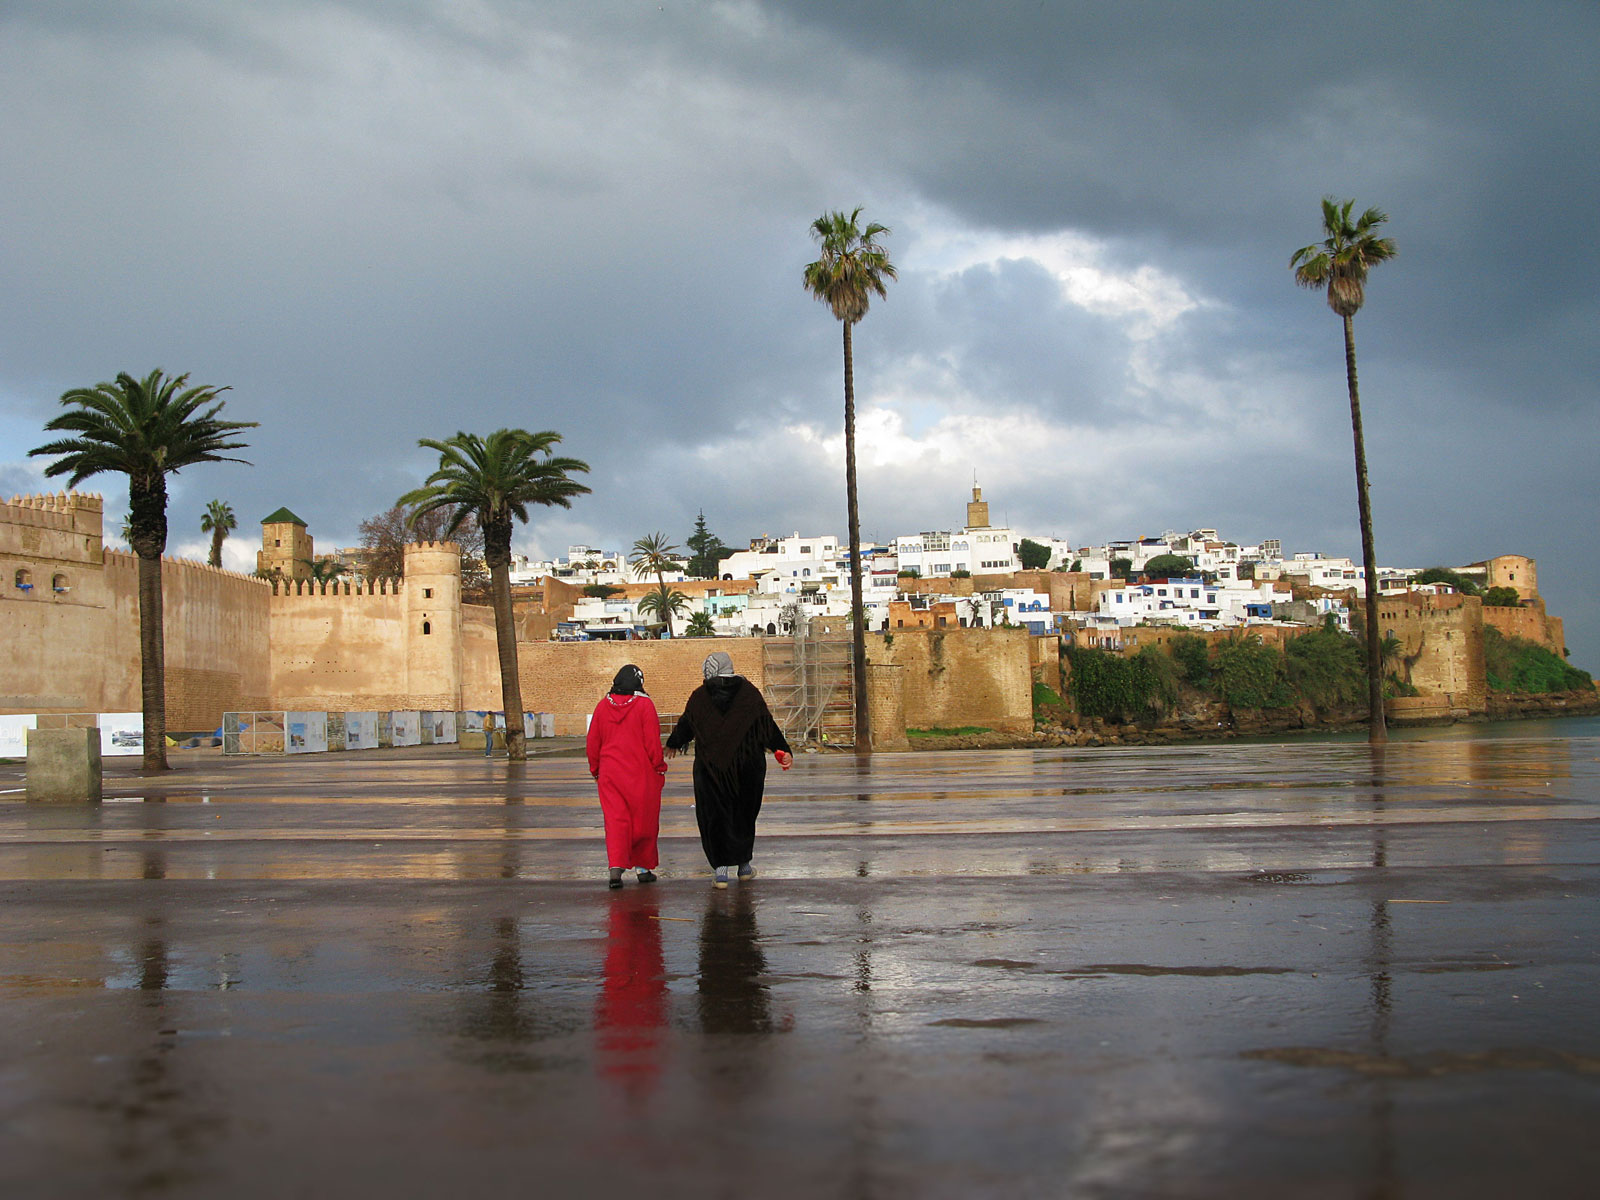 Two women on their way to the medina of Rabat